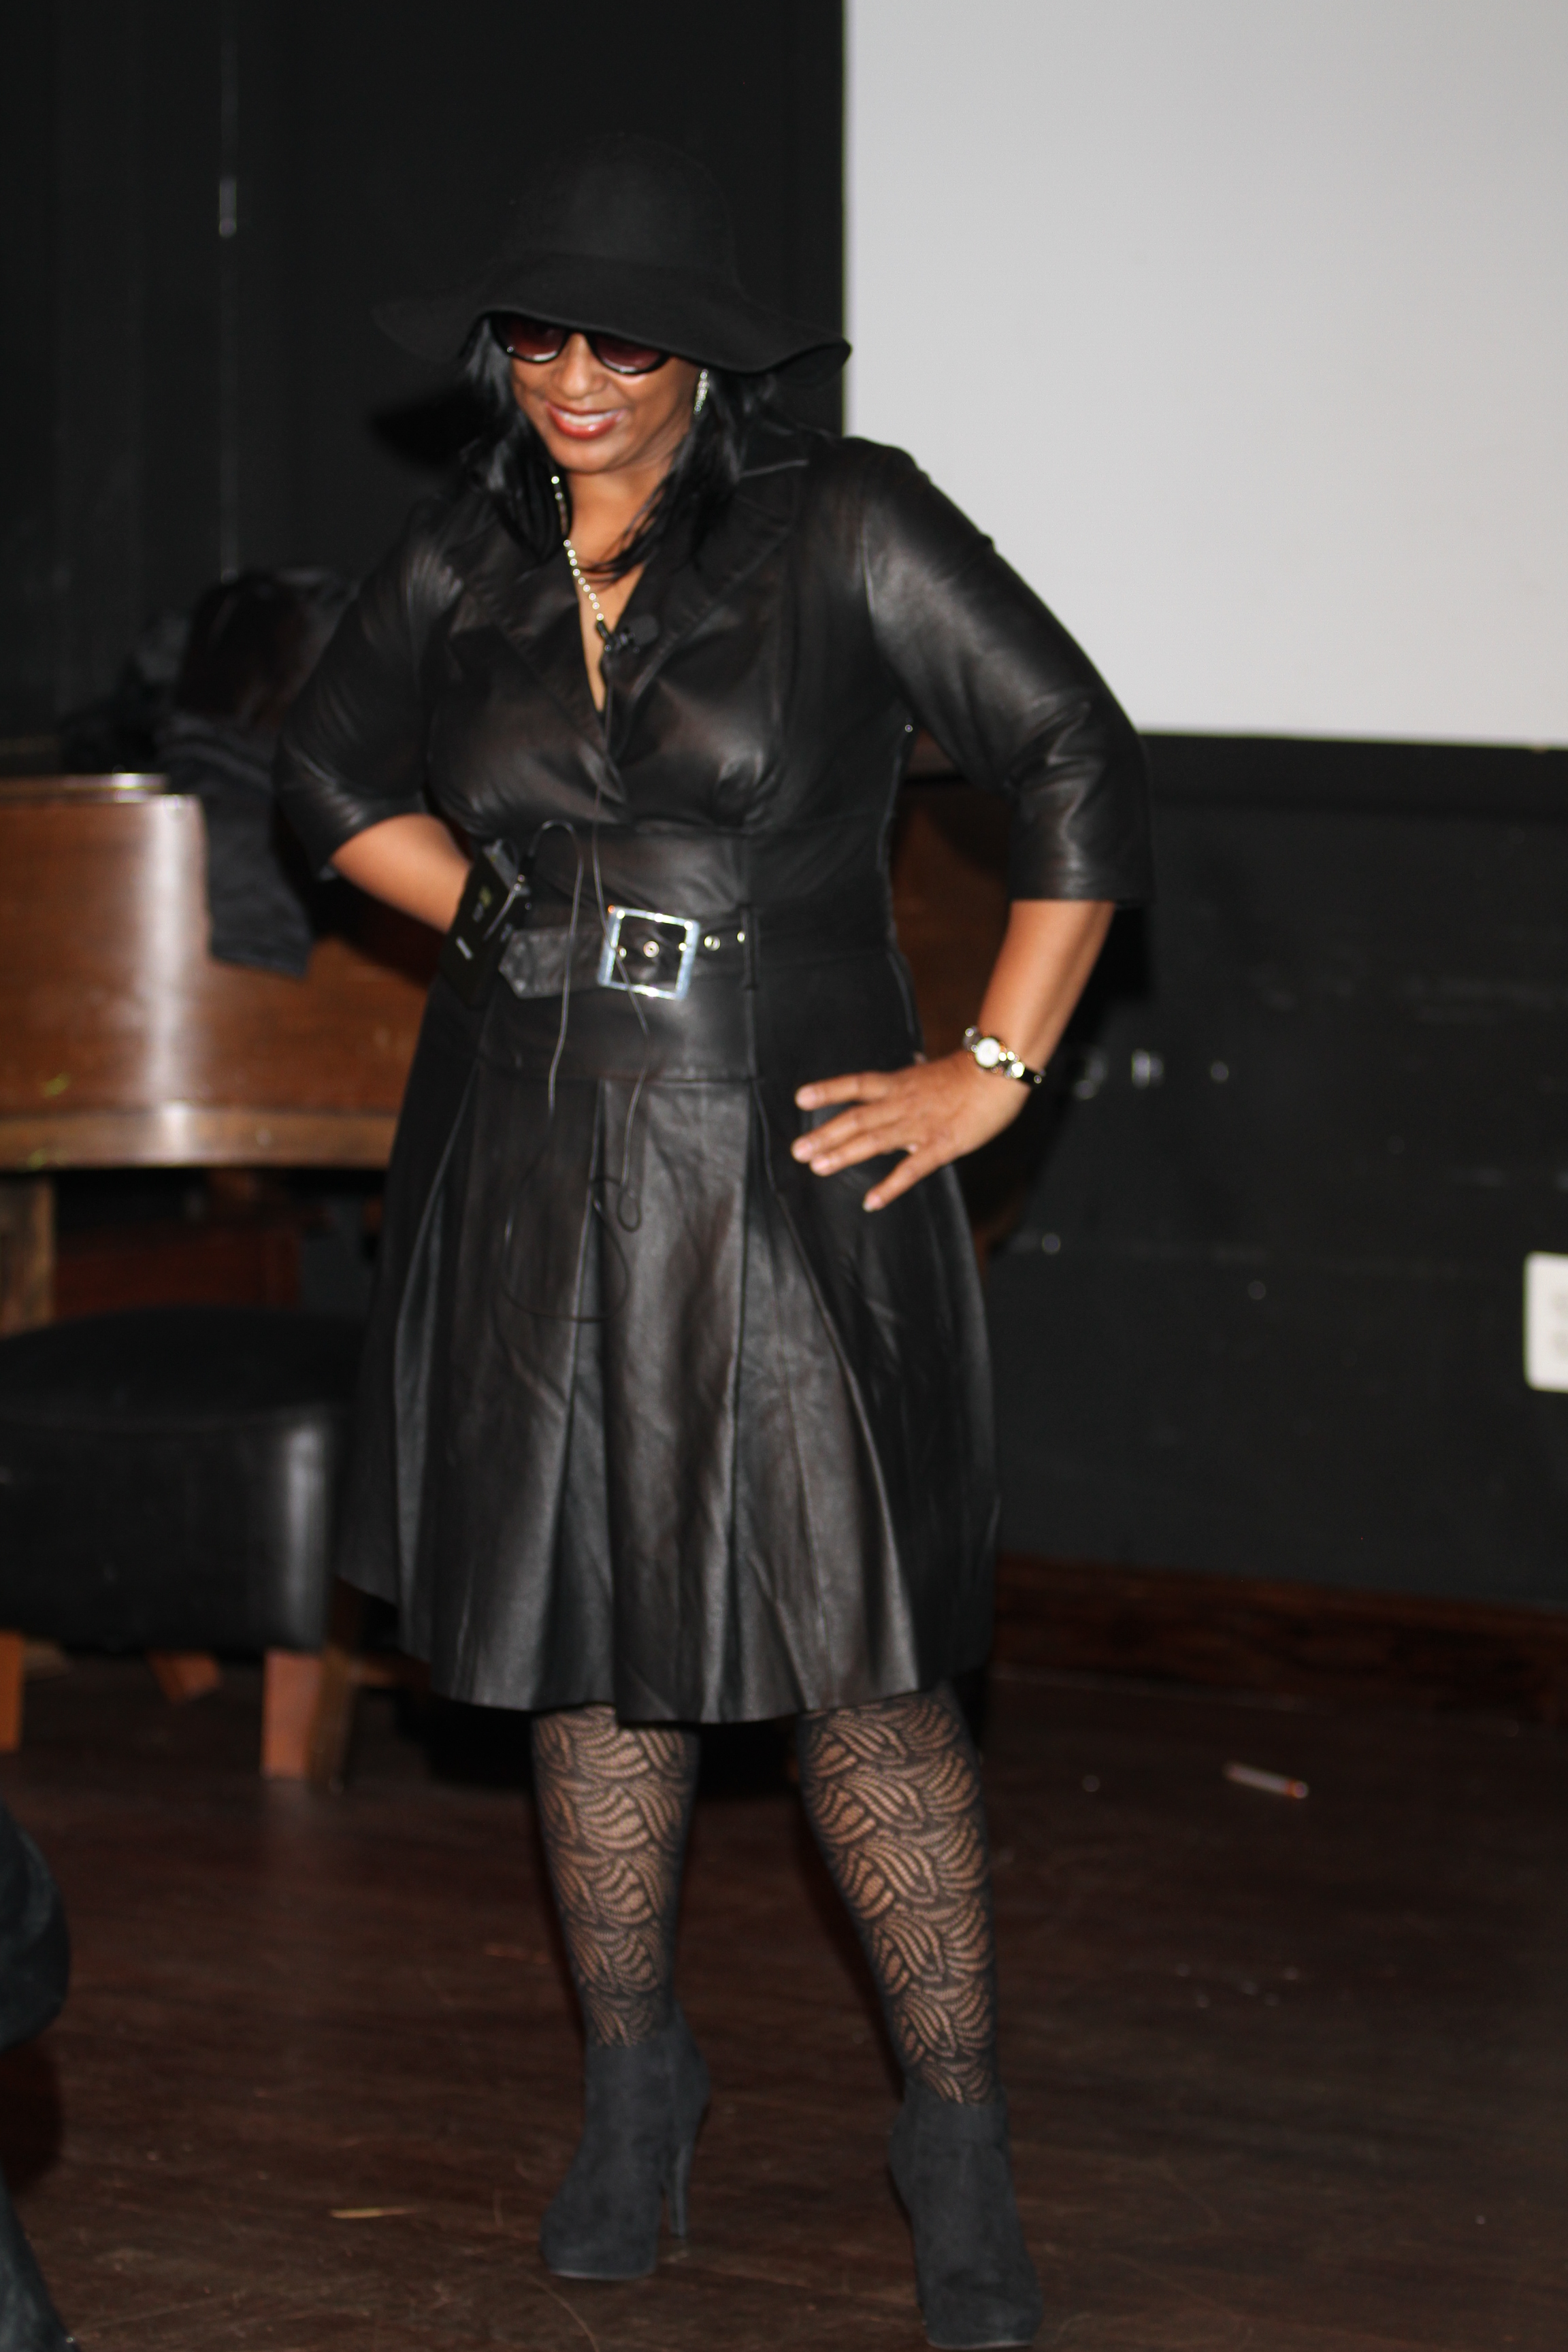 """Missy Thang  - Missy Thang is a character and persona that was birthed out of Christine Turner Jackson's desire to create a humorous character who can deliver clean comedy to audiences of all ages in diverse venues. As a former PG County science classroom teacher and 5th/6th grade children's ministry leader, comedy has always been a critical component of her delivery. The debut of Missy Thang occurred in 2015 as a """"stand-in"""" host for a comedy show at Busboys and Poets featuring her other close friend comedy character, Sistah Soldjah. Since that time, Missy Thang has been well received as a character who is unapologetically confident in her skin as a woman of many talents. Most notable are her self-proclaimed flare for fashion and musical talents. Missy Thang is quick to remind her audiences that she """"doesn't miss a thang!""""She has served as the MC for fashion shows and made special appearances at events such as birthday and anniversary celebrations, as well as engaging with women and youth through book clubs, women's conferences, at womens' shelters and church fundraisers.The woman behind Missy Thang (and Sistah Soldjah), is Christine Turner Jackson. She is the author of Pitch Black, a fictional story based on her father, Benjamin Turner, a talented high school baseball pitcher in Washington, DC in the 1950's. She envisions creating a new brand of clean female comedy as she increases exposure for both Missy Thang and Sistah Soldjah as renowned national and international comedians."""